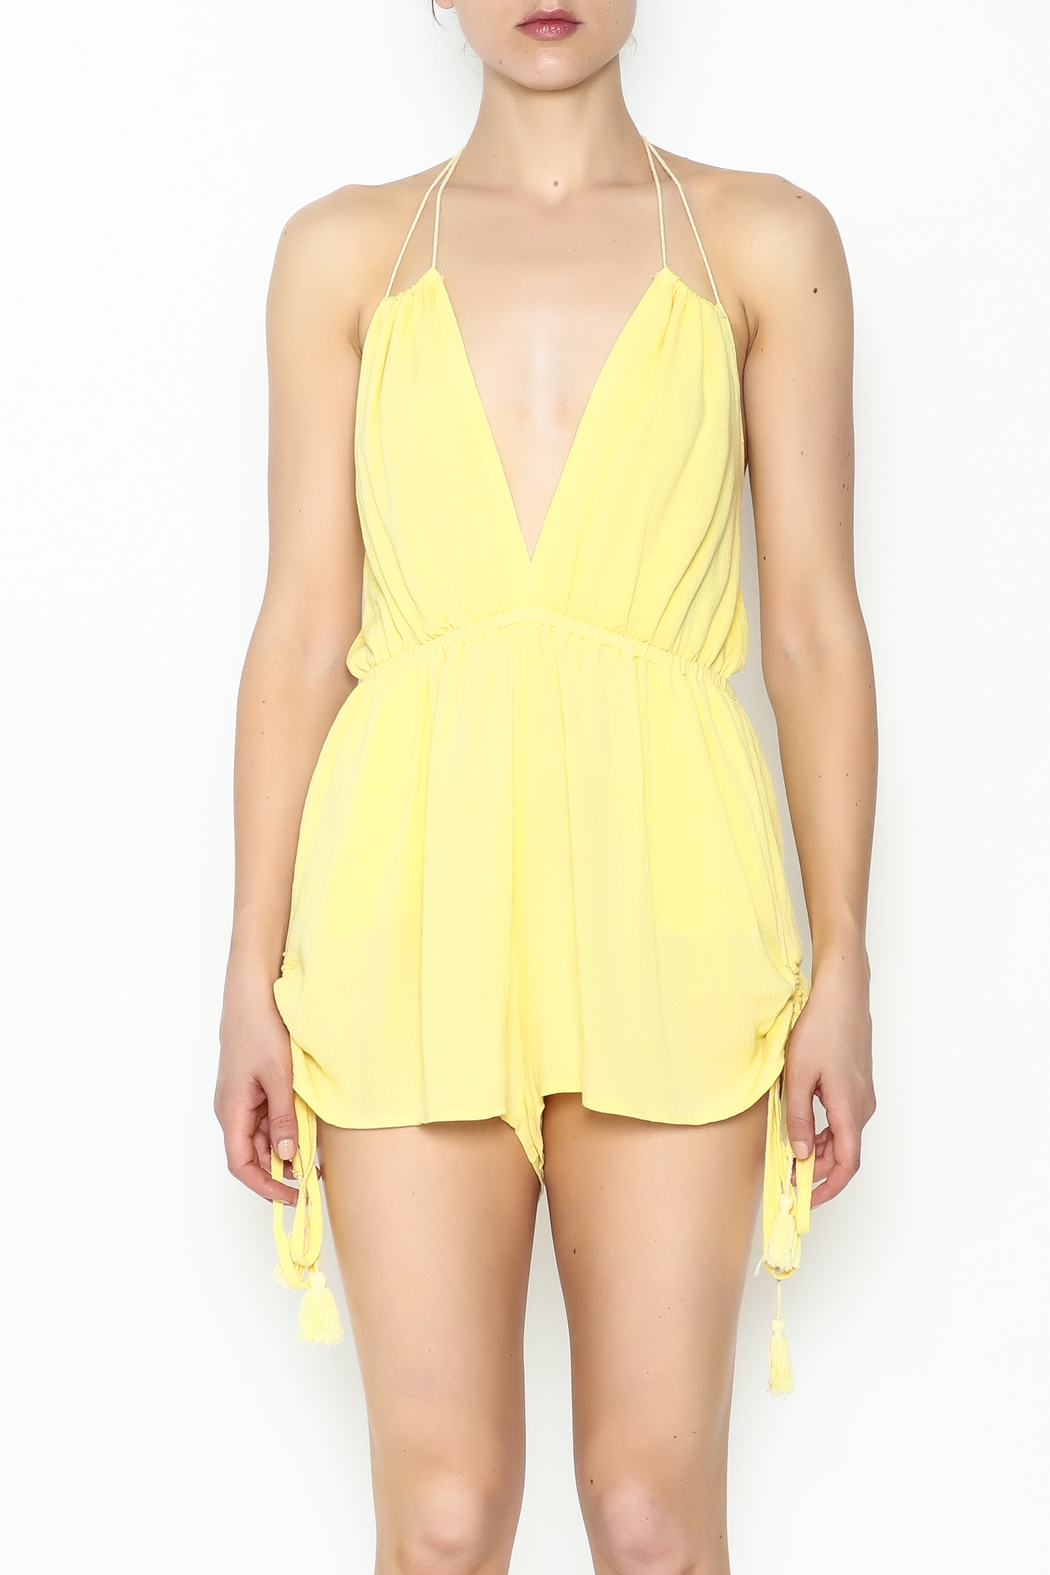 luxxel Yellow Strappy Romper - Front Full Image